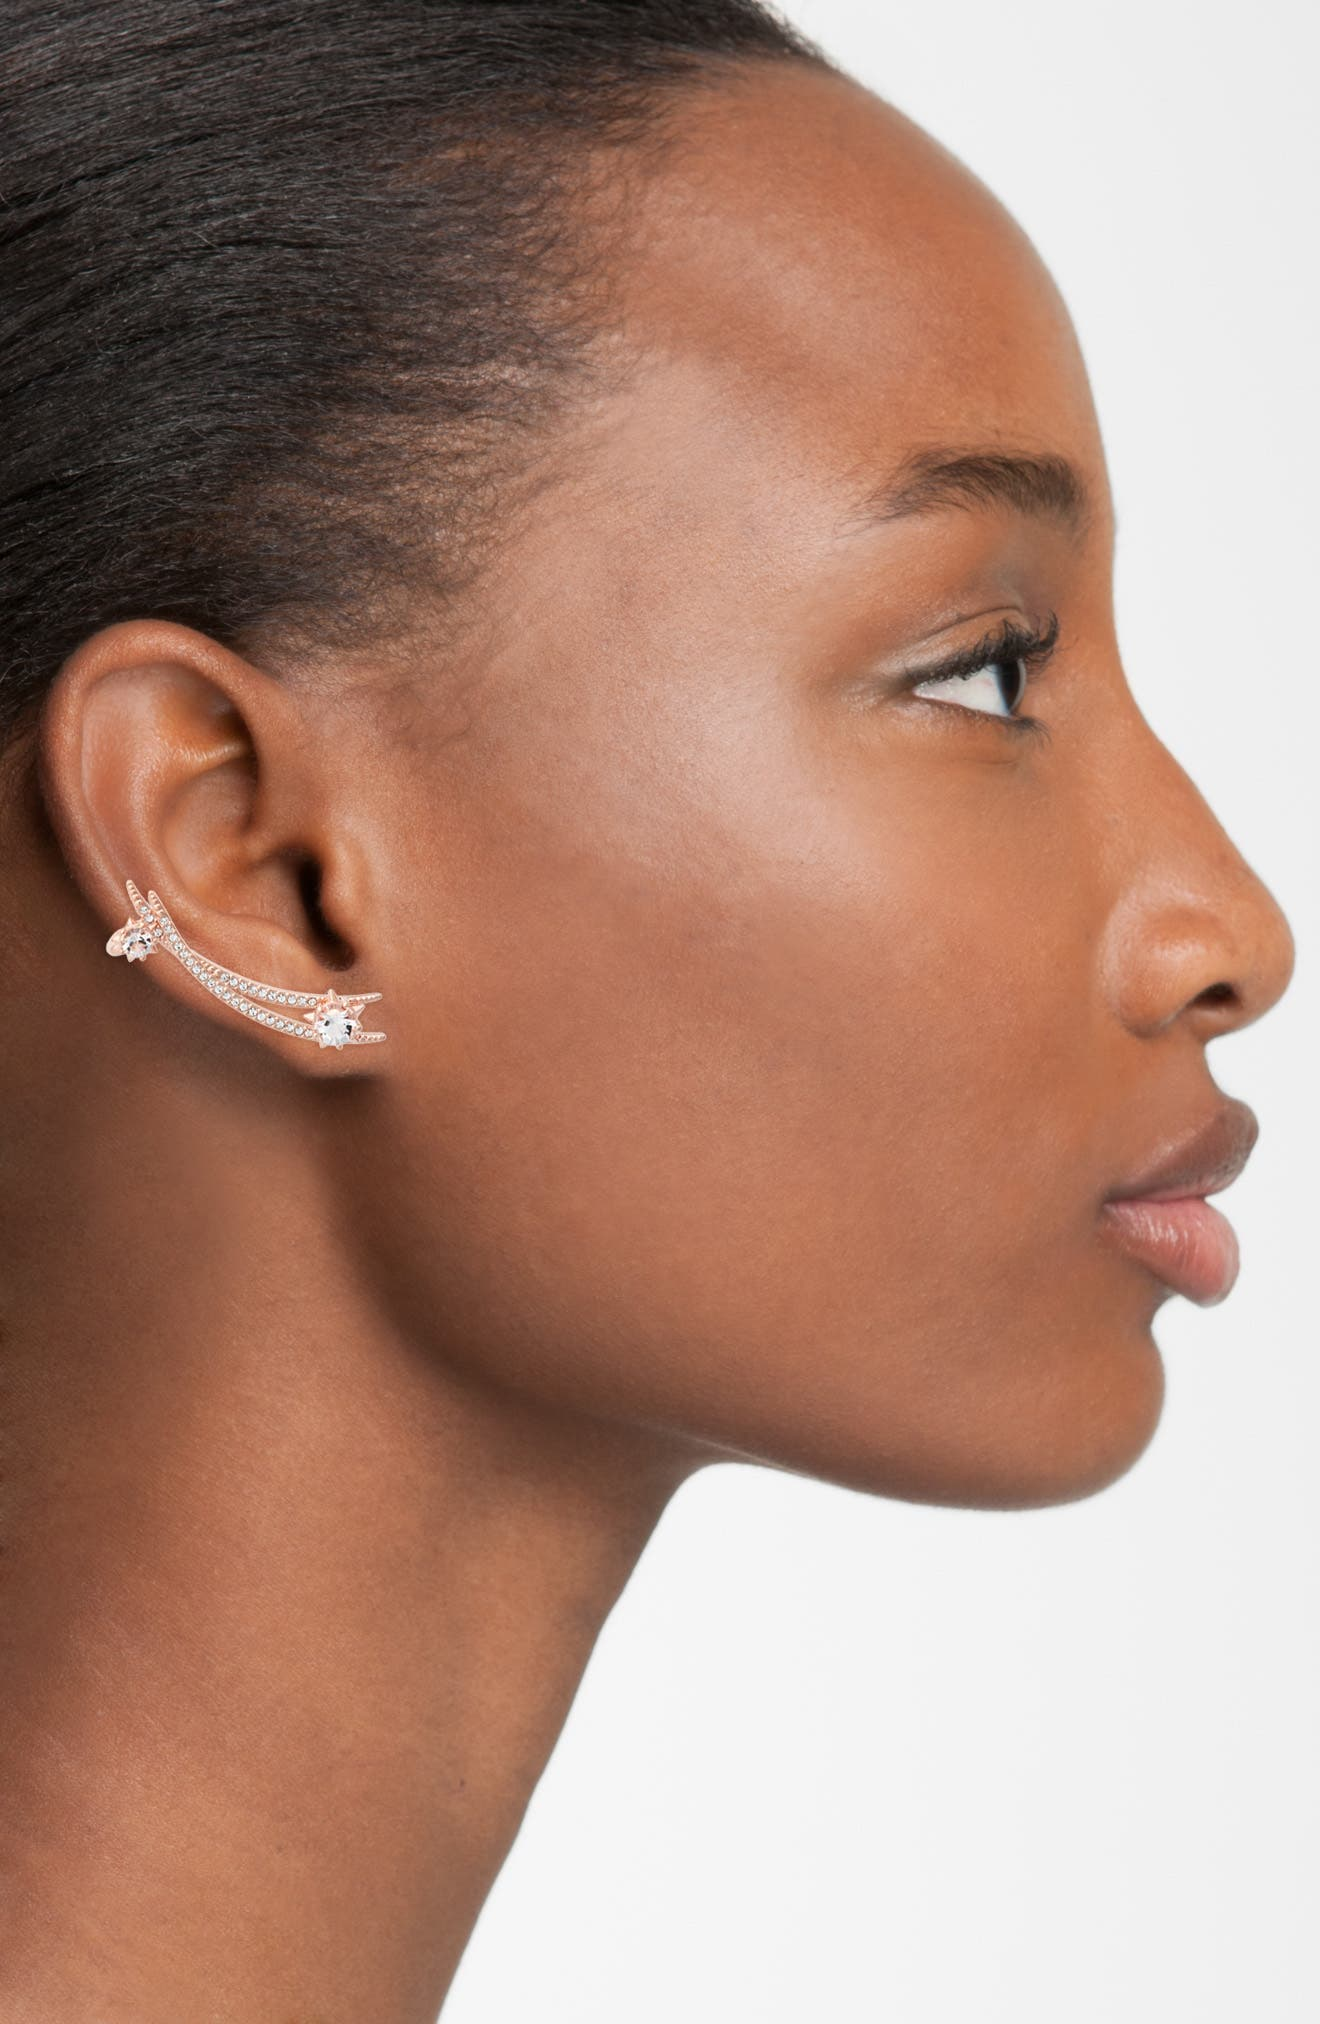 Wishes Linear Stud Earrings,                             Alternate thumbnail 2, color,                             Clear/ Rose Gold